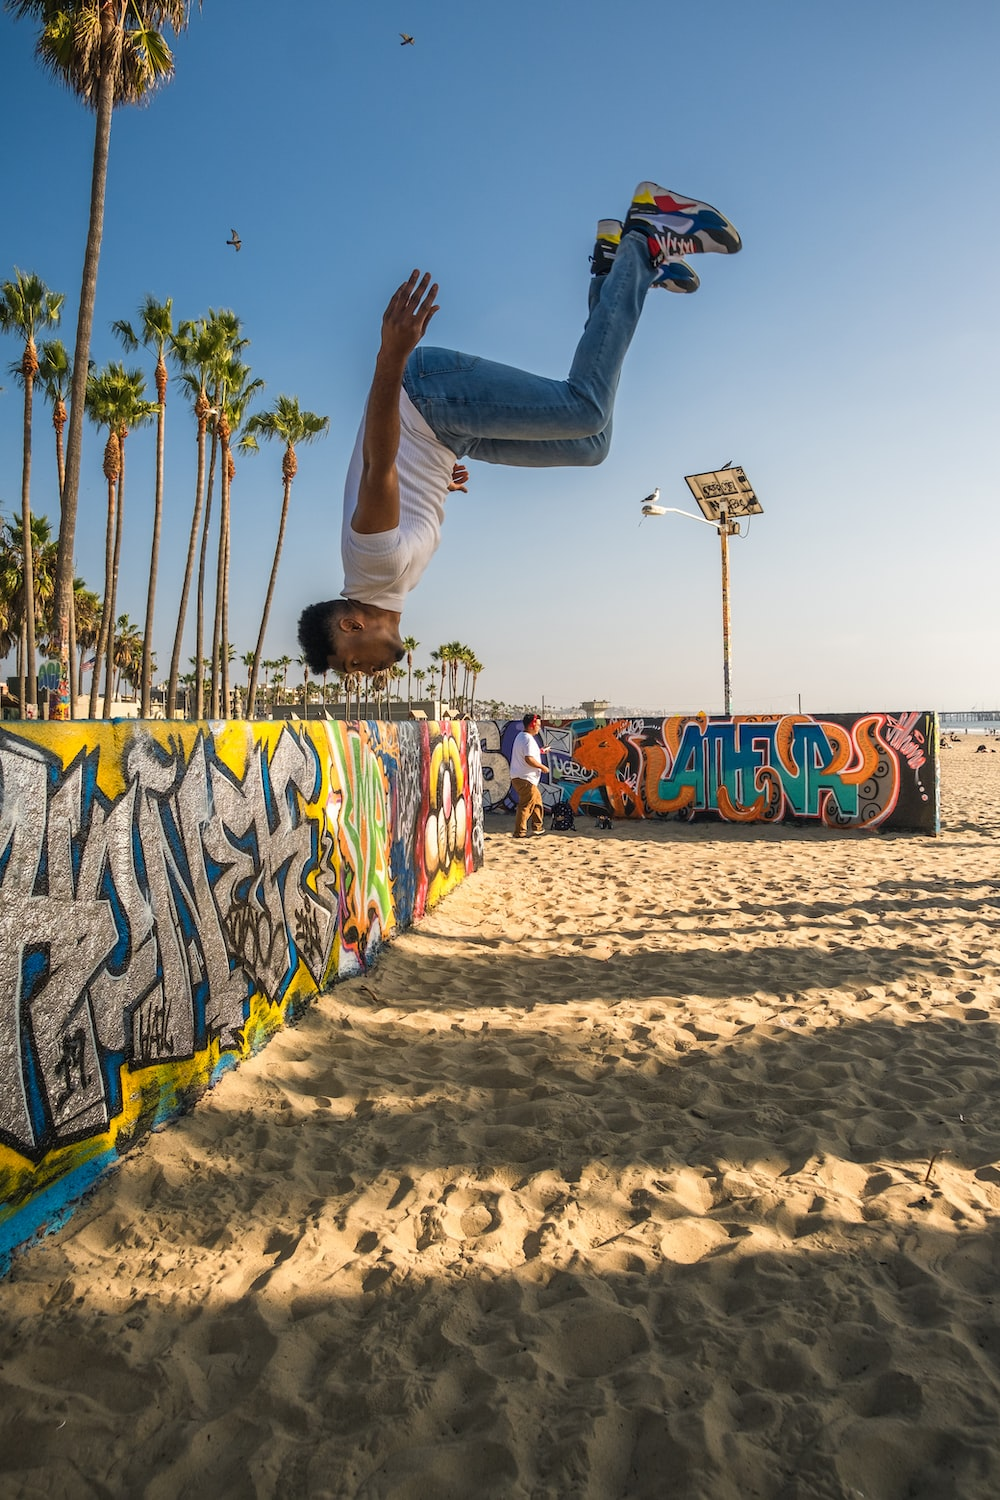 man in white t-shirt and black pants doing skateboard stunts on beach during daytime